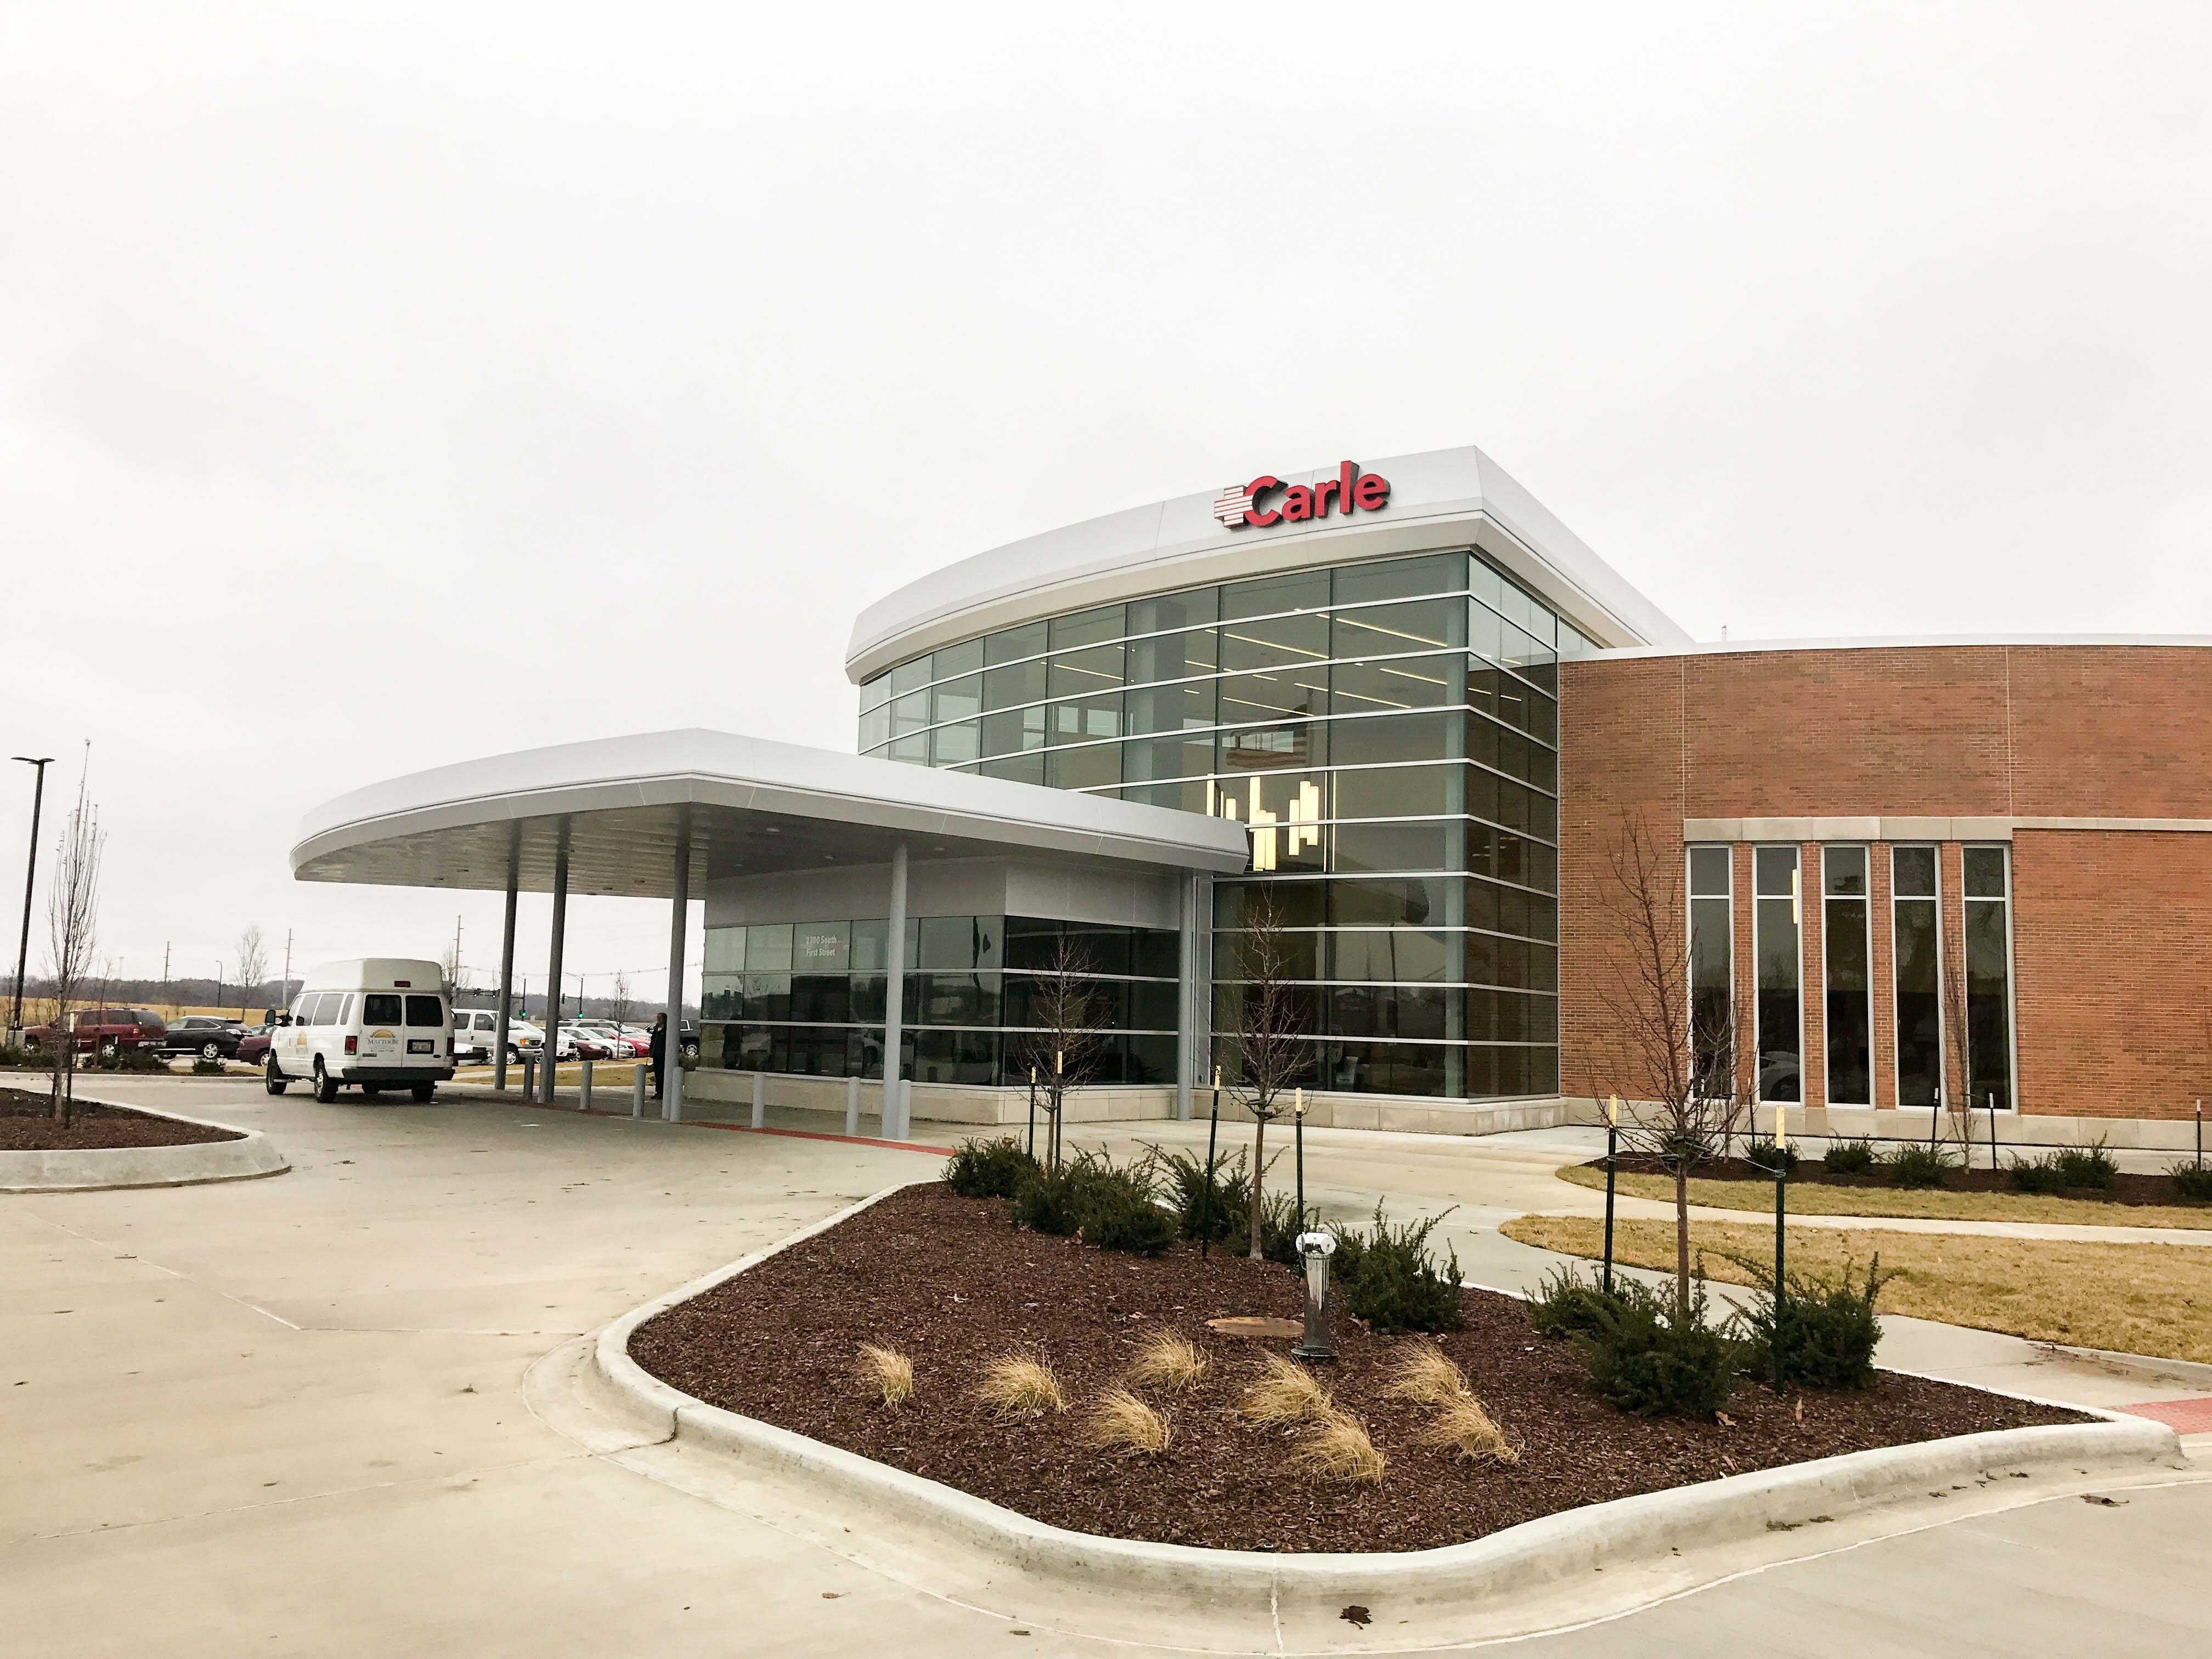 Carle opened an Orthopedics and Sports Medicine Building in Research Park on Monday. The building is located at 2300 S. First St. in Champaign, at the corner of First Street and Windsor Road and will serve student athletes and community members.